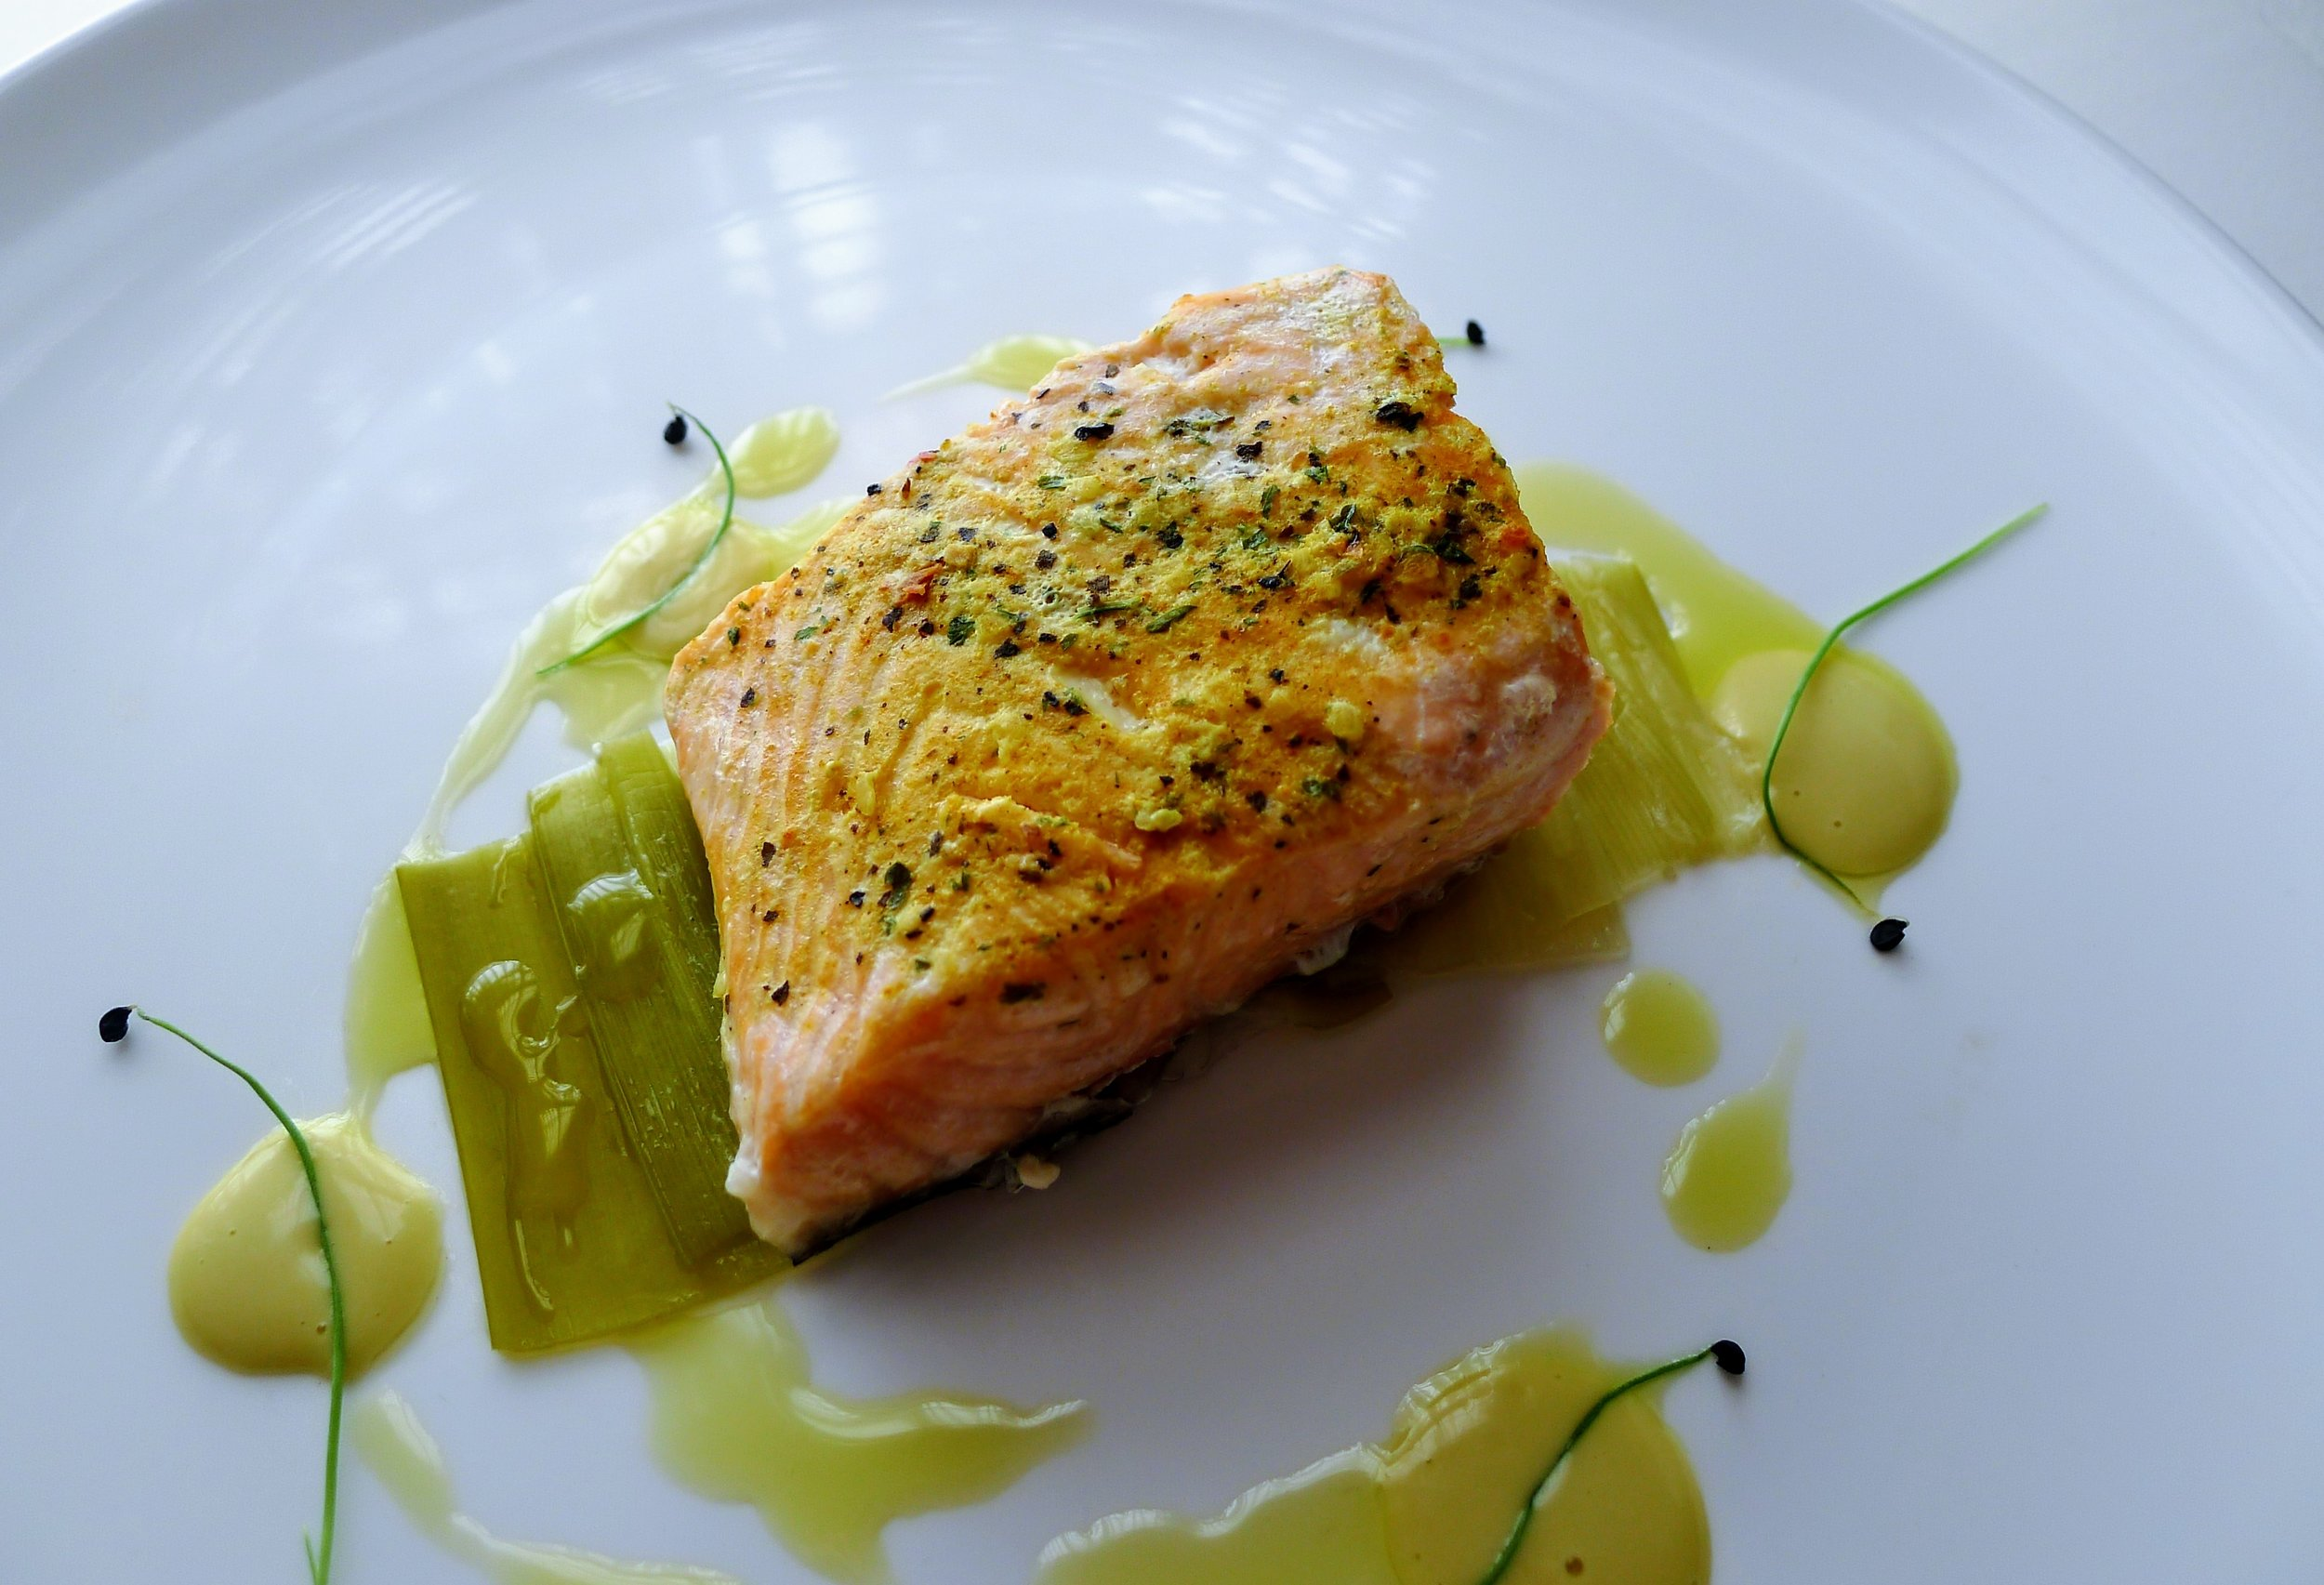 Steamed Salmon marinated with Ginger, Seaweed, Mustard, Leek leaves, Egg sauce & EVOO